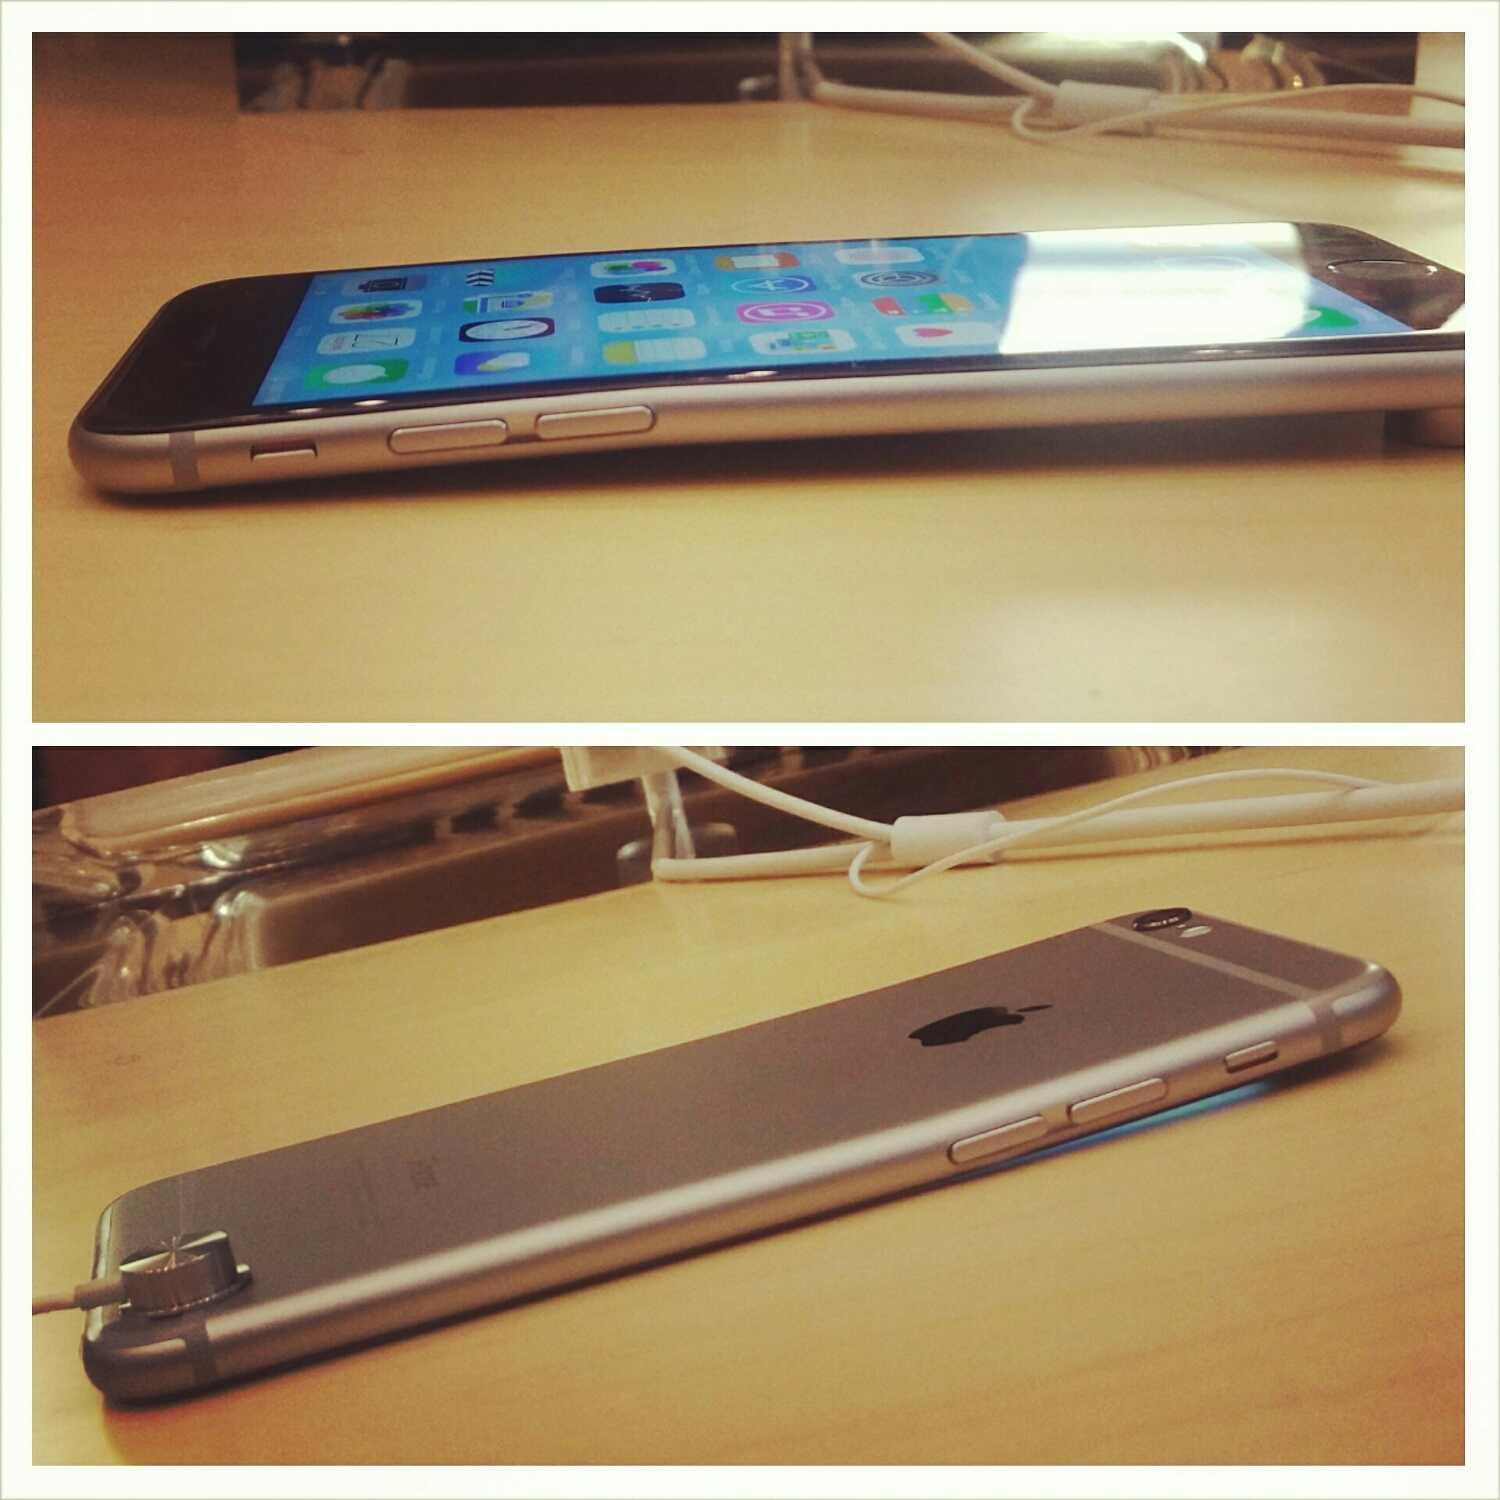 A Google+ reported seeing this iPhone 6 bent inside of an Apple Store   .